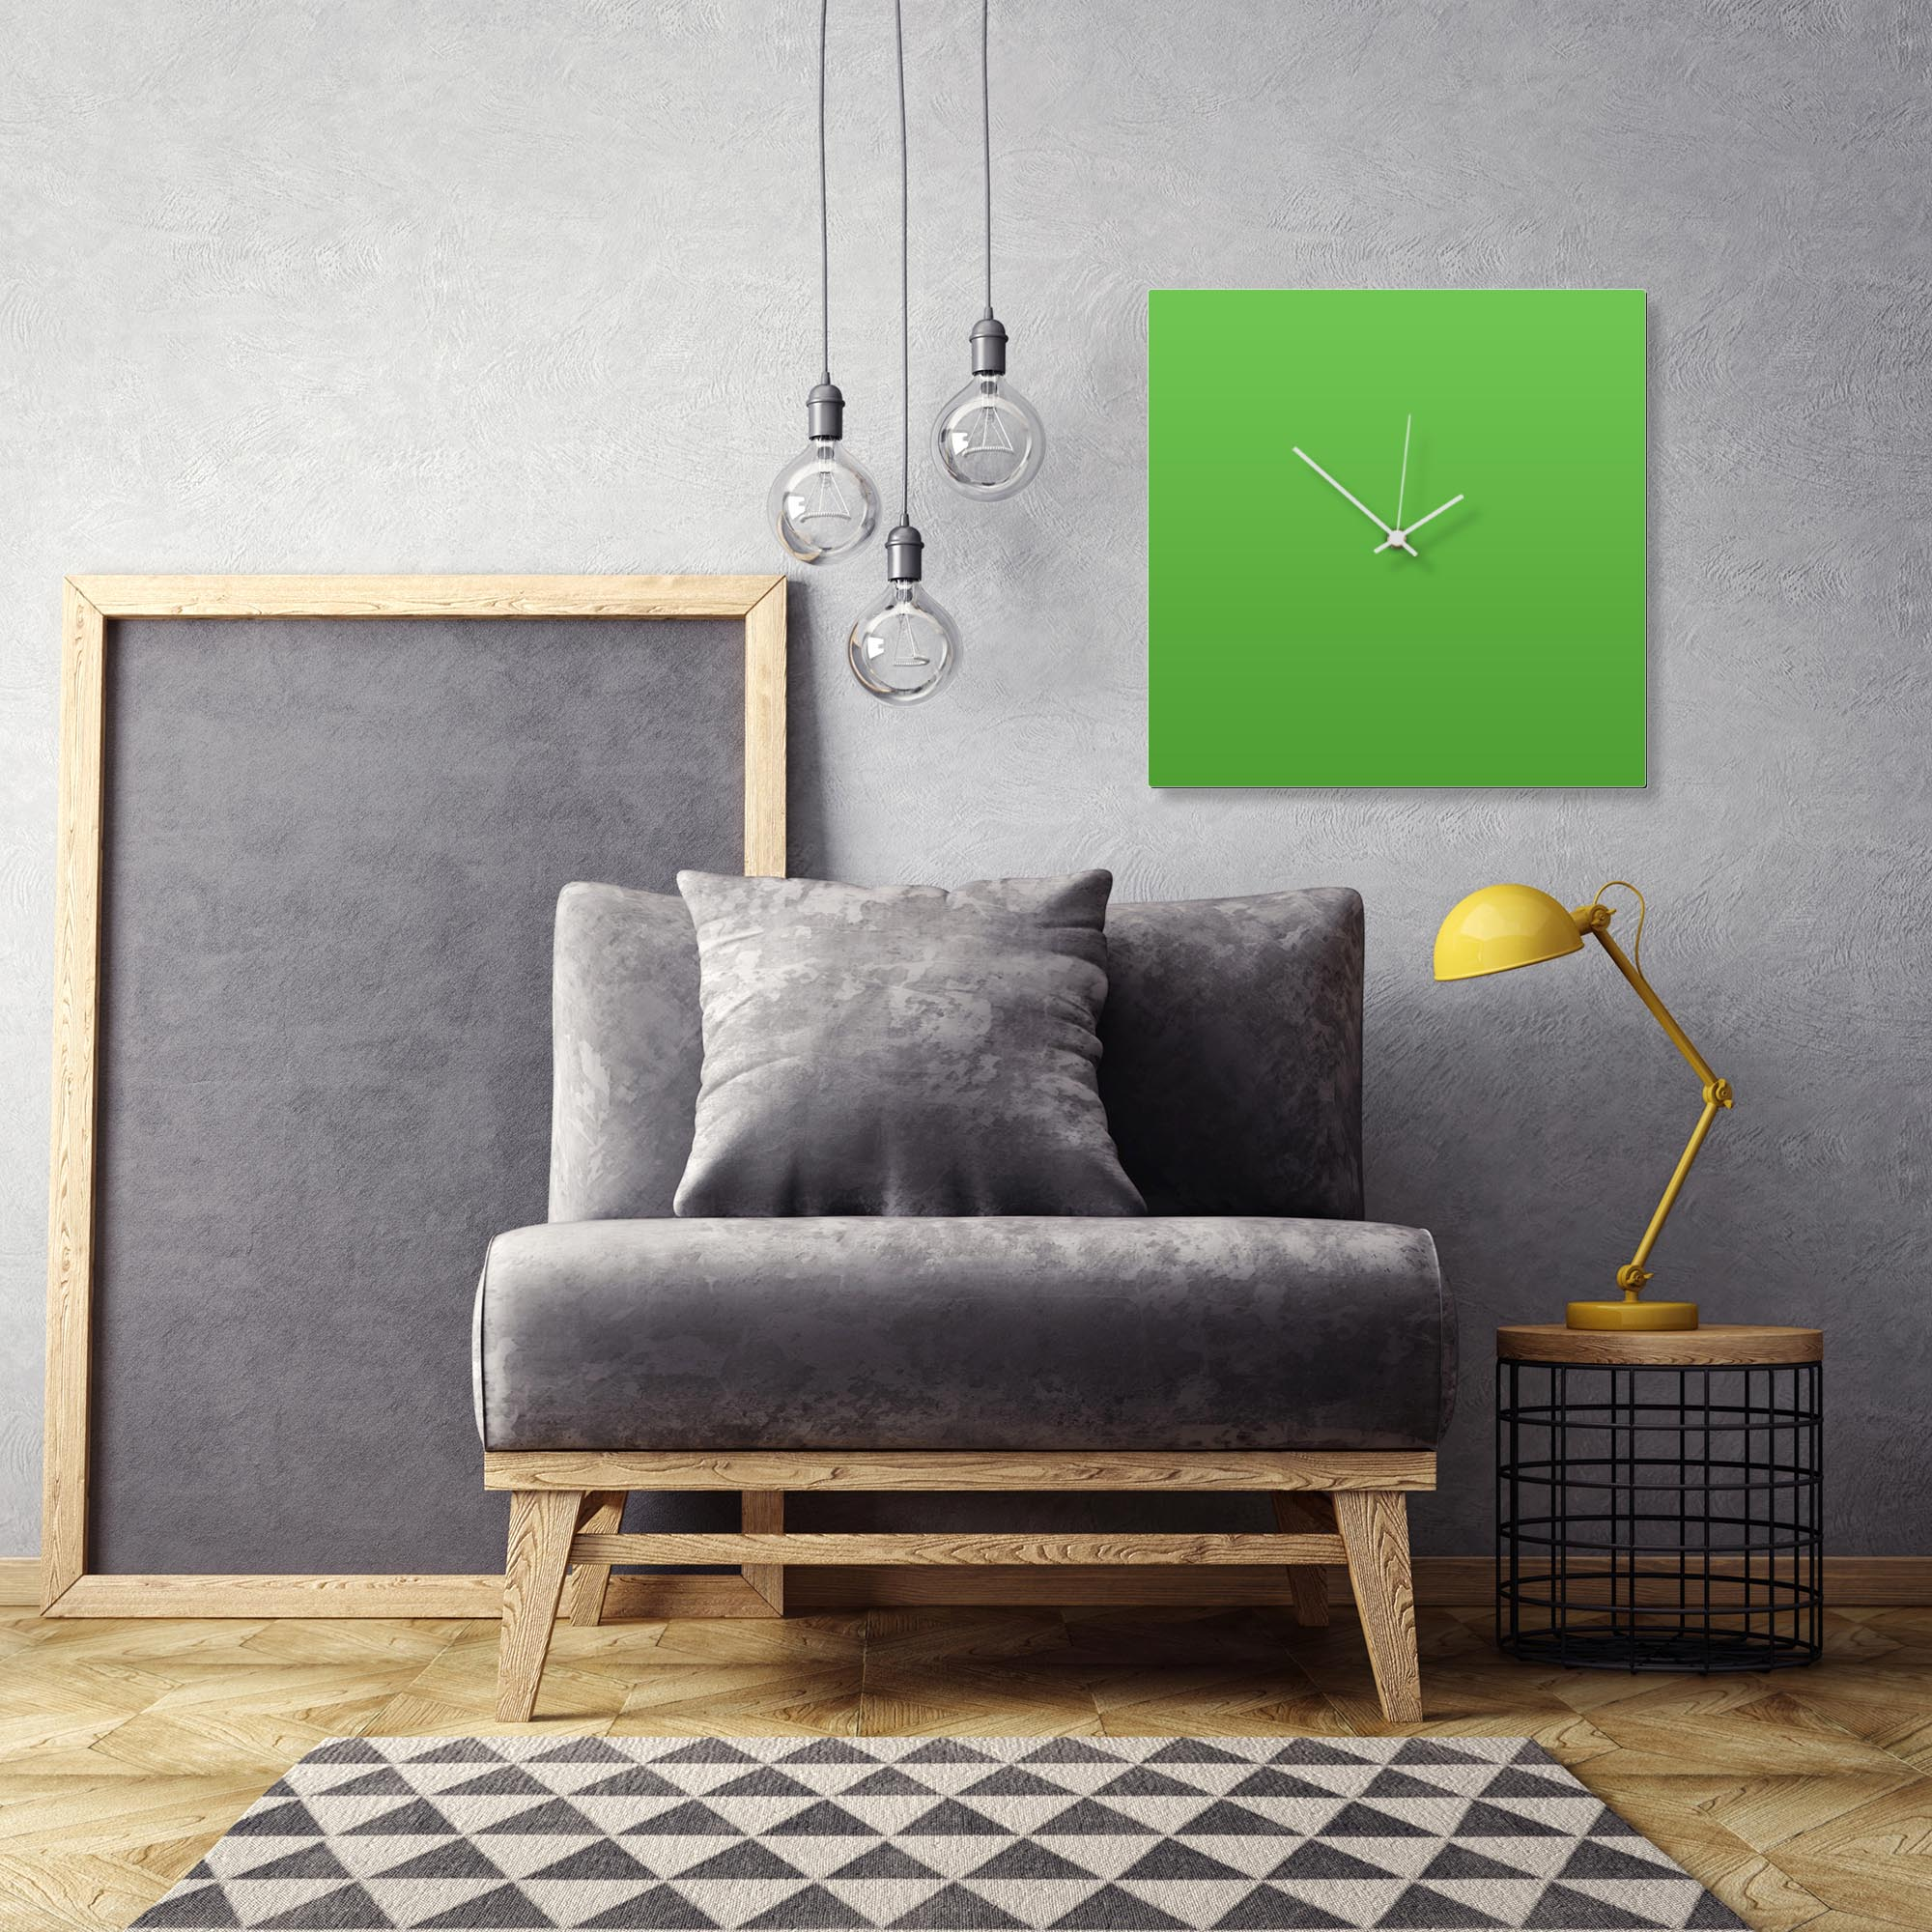 Greenout White Square Clock Large by Adam Schwoeppe Contemporary Clock on Aluminum Polymetal - Alternate View 1